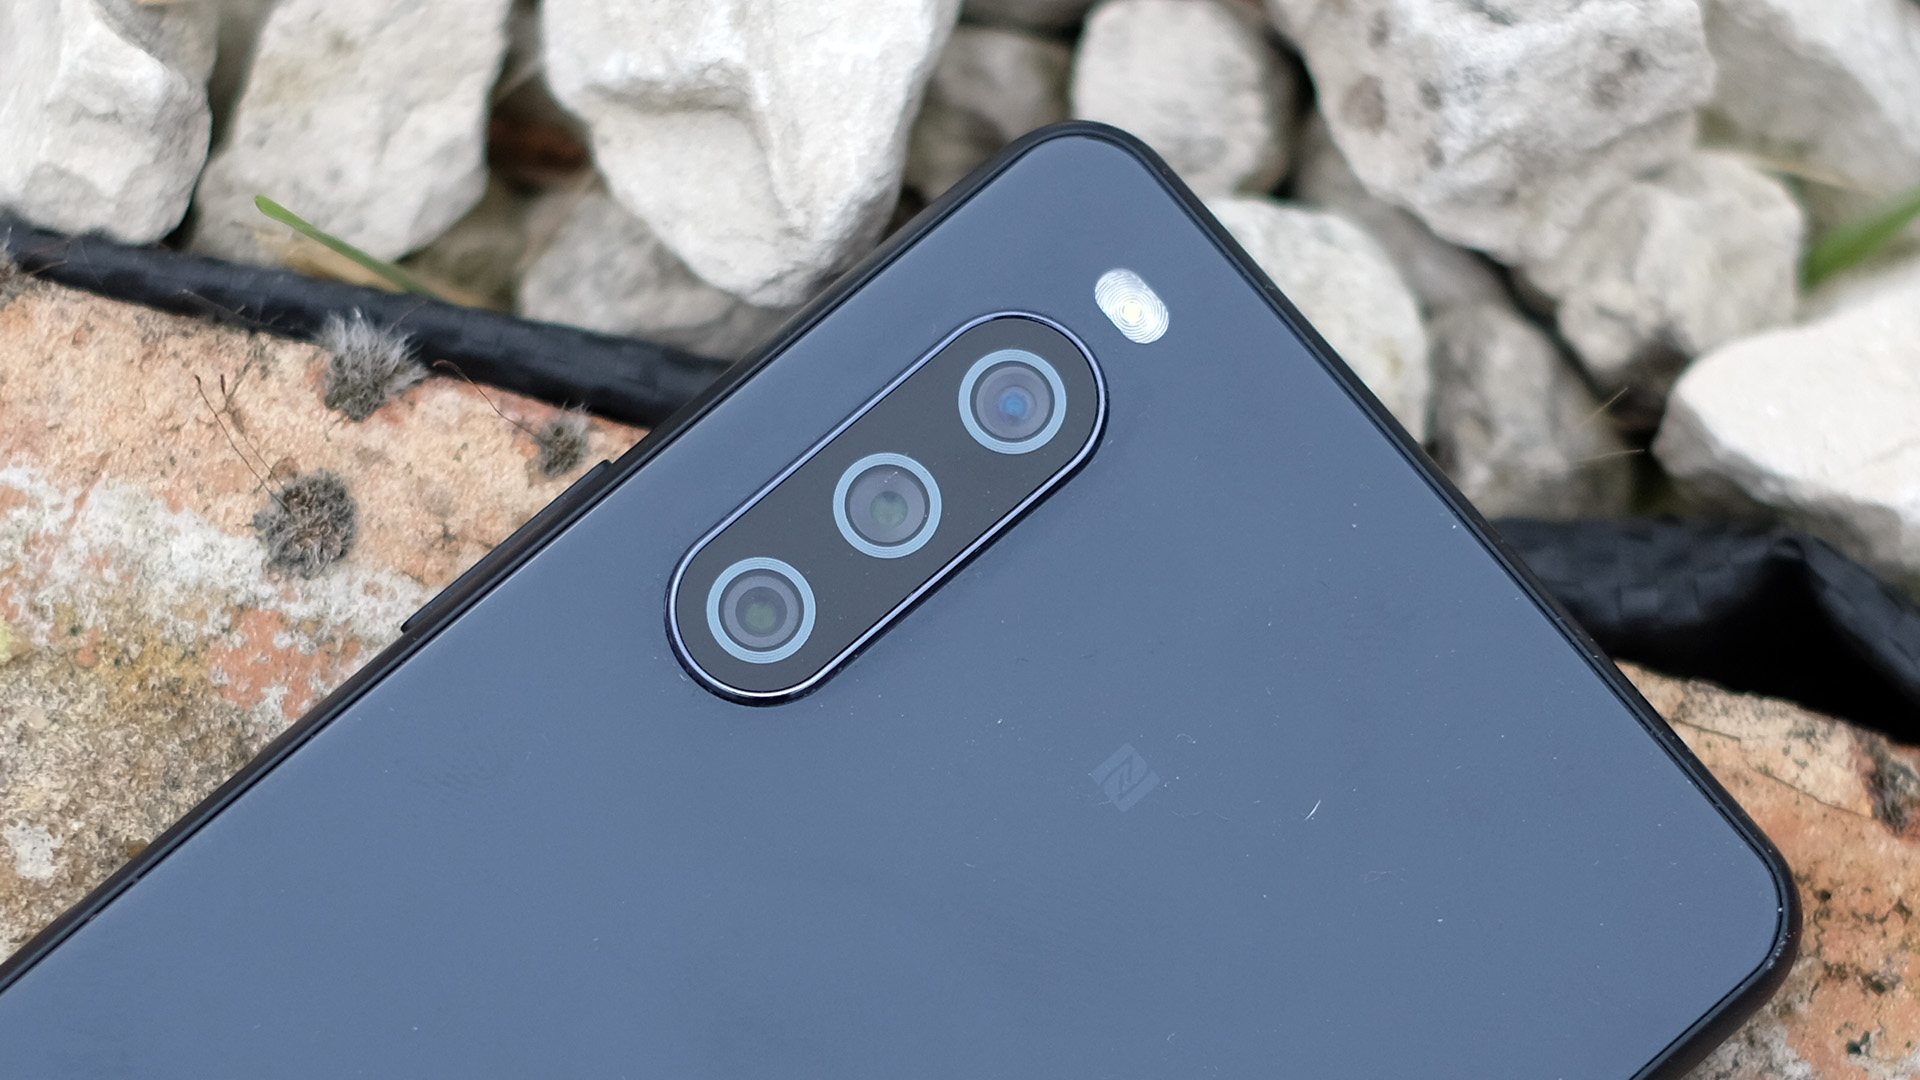 A close-up of the Sony Xperia 10 III's cameras